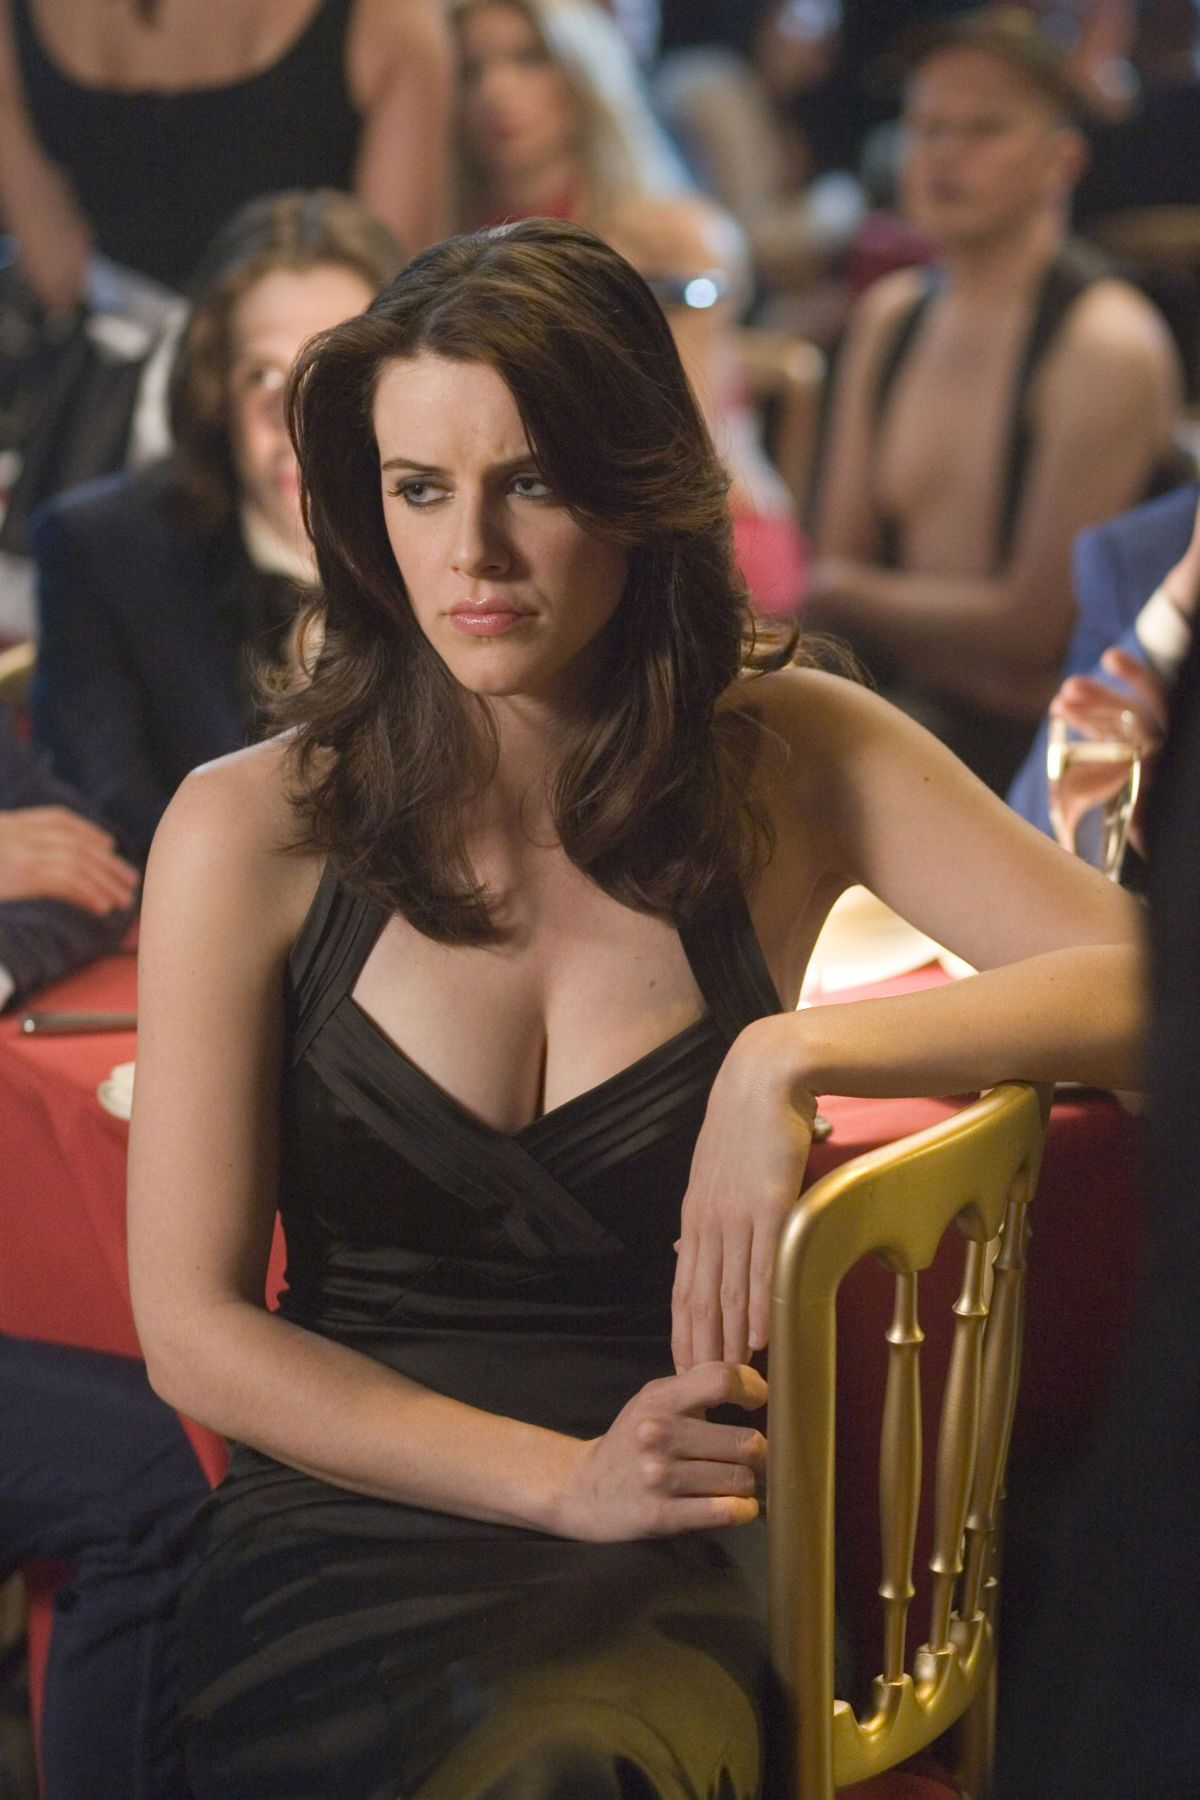 Michelle ryan naked pictures